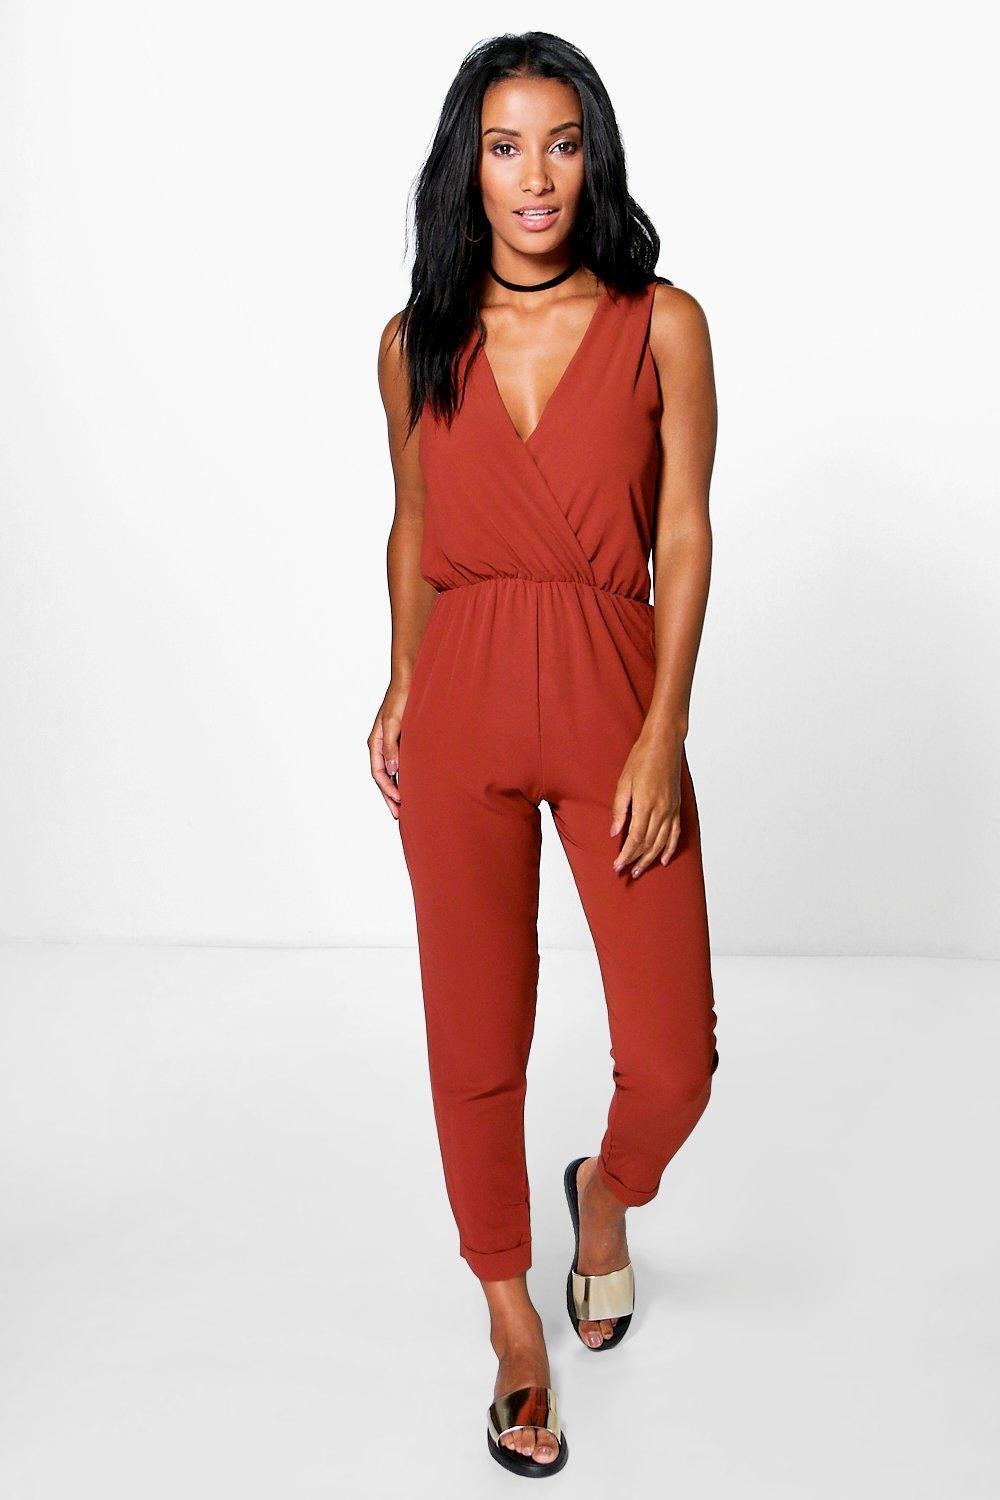 Cross Front Woven Jumpsuit Spice - length: standard; neckline: v-neck; pattern: plain; sleeve style: sleeveless; predominant colour: terracotta; occasions: evening; fit: body skimming; fibres: viscose/rayon - 100%; sleeve length: sleeveless; style: jumpsuit; pattern type: fabric; texture group: jersey - stretchy/drapey; season: s/s 2016; wardrobe: event